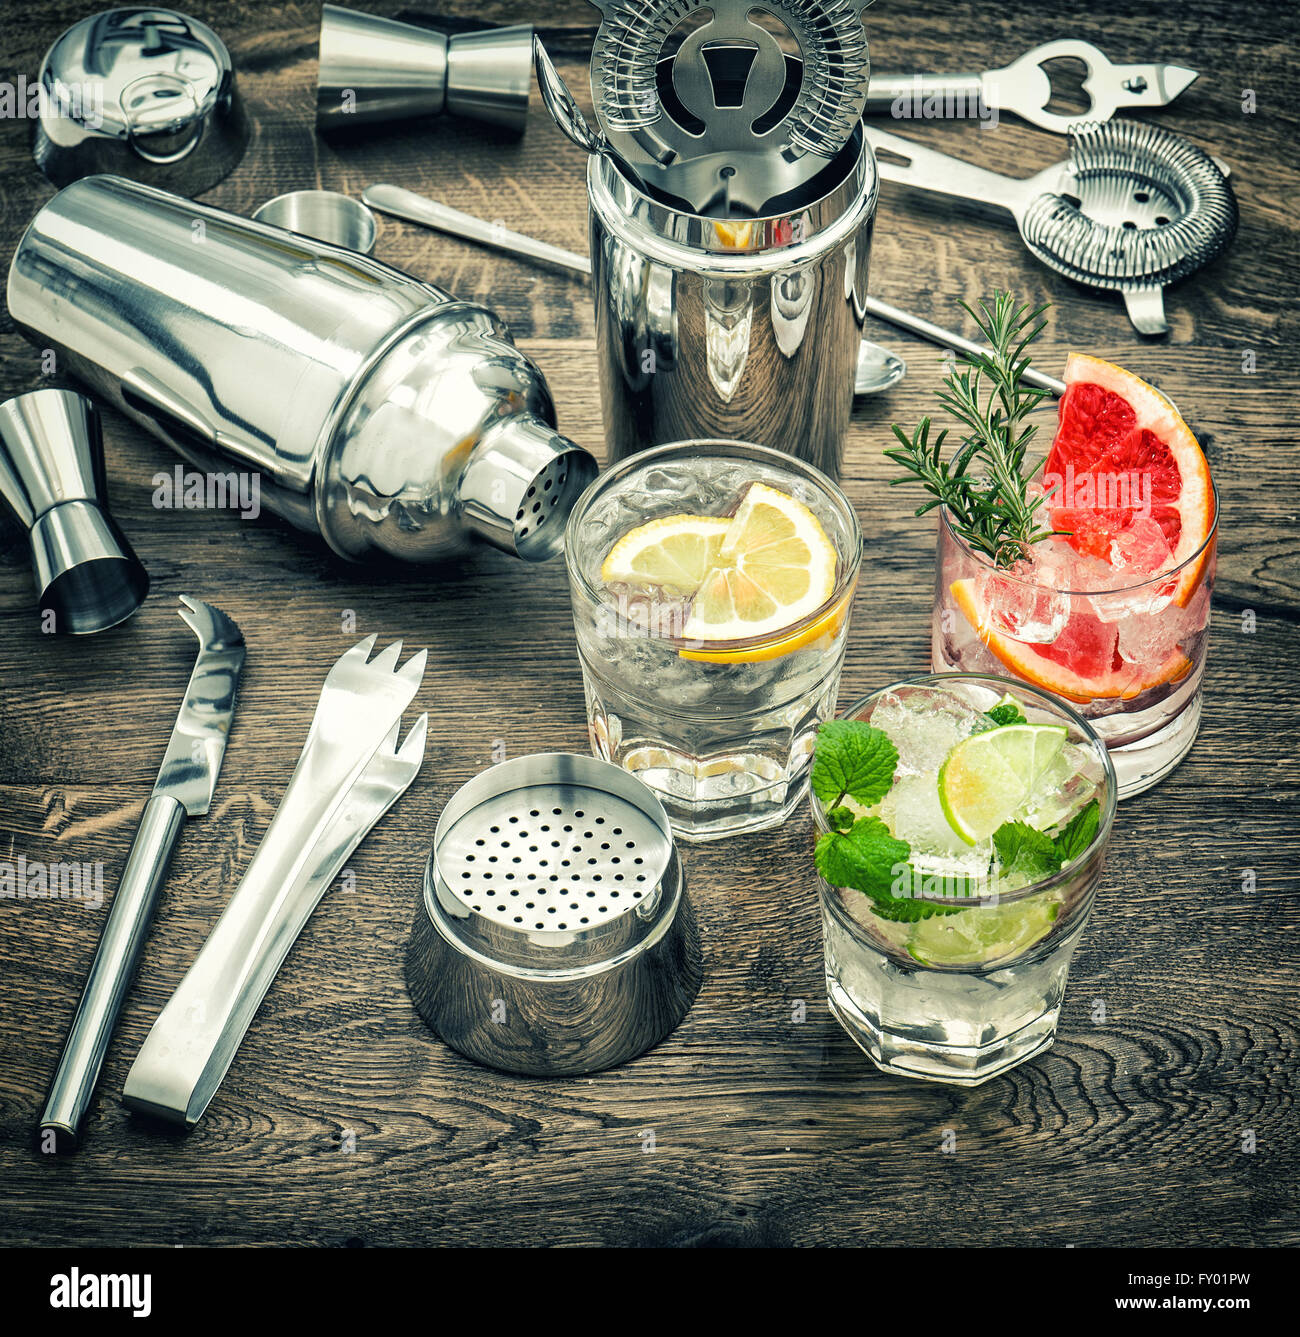 Drinks with ice and tonic water. Cocktail making accessories. Vintage style toned picture - Stock Image